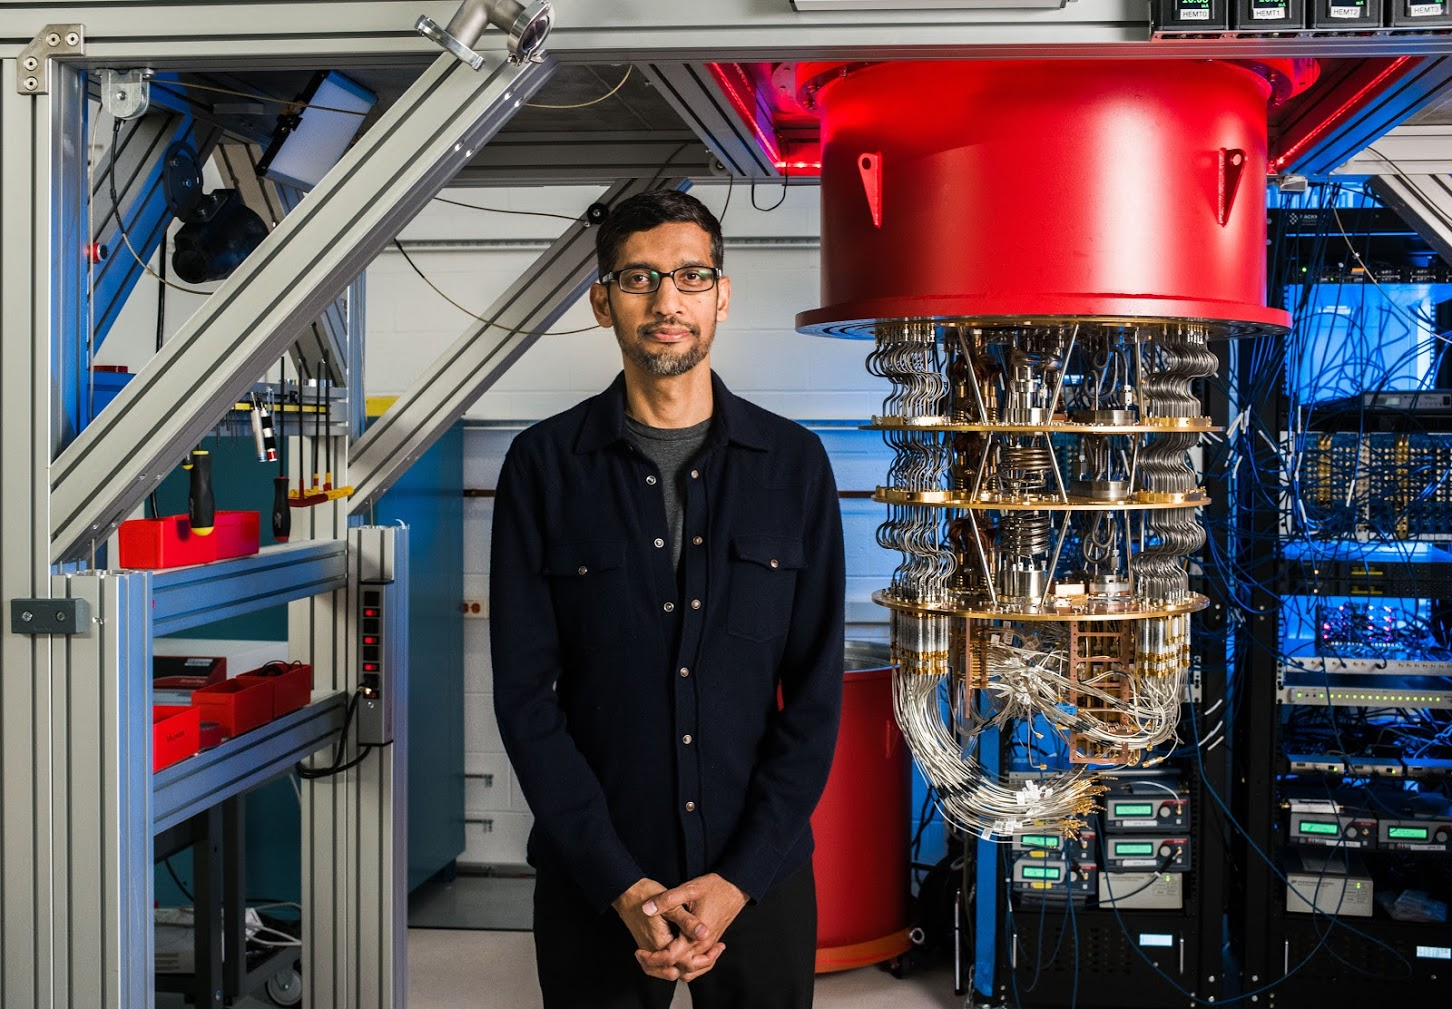 Google CEO Sundar Pichai on achieving quantum supremacy | MIT ...